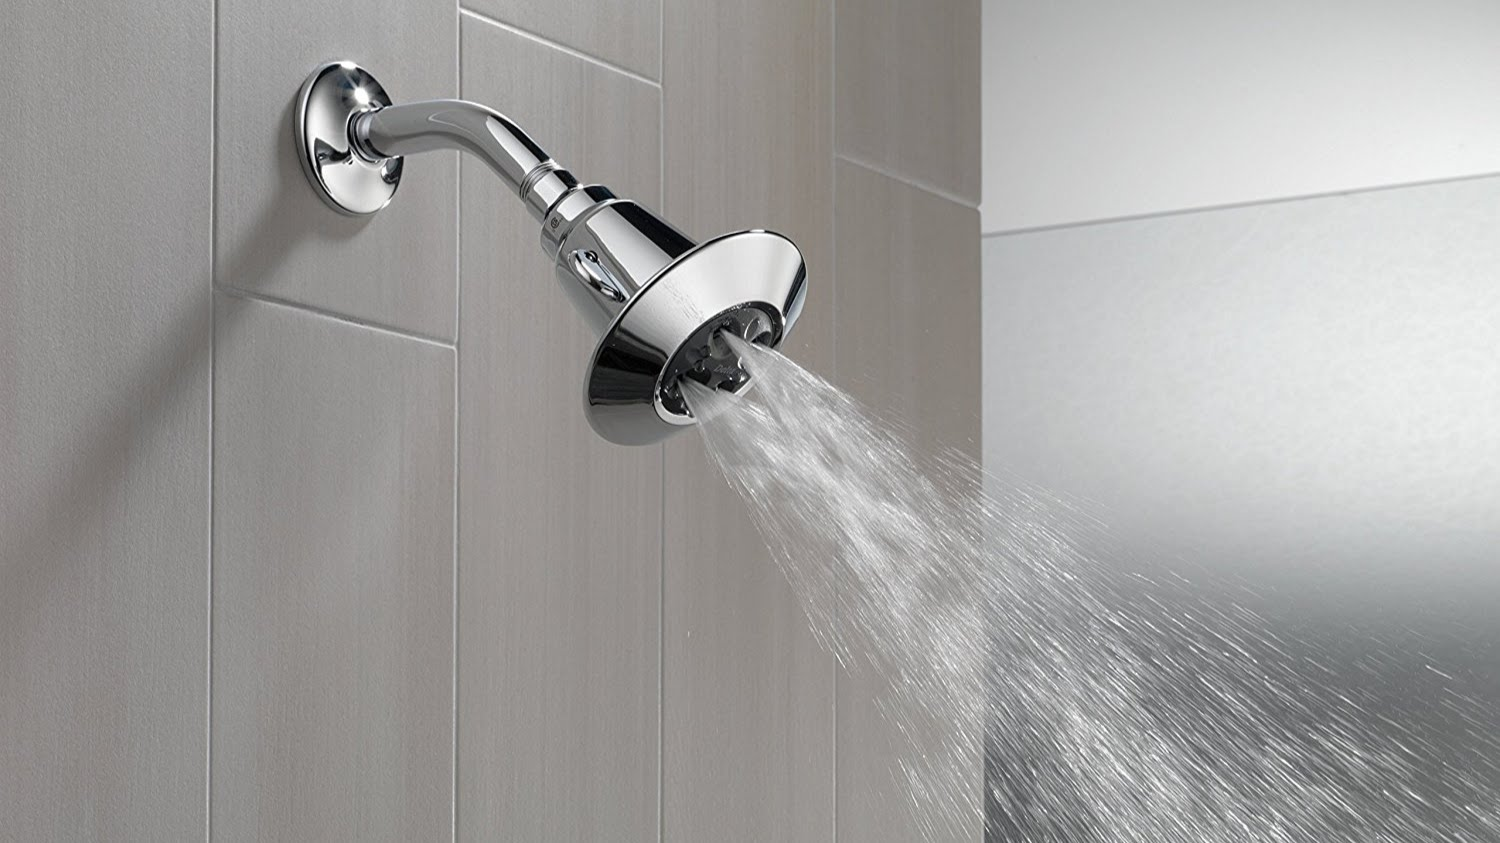 5 Best High Pressure Shower Heads Real Homes